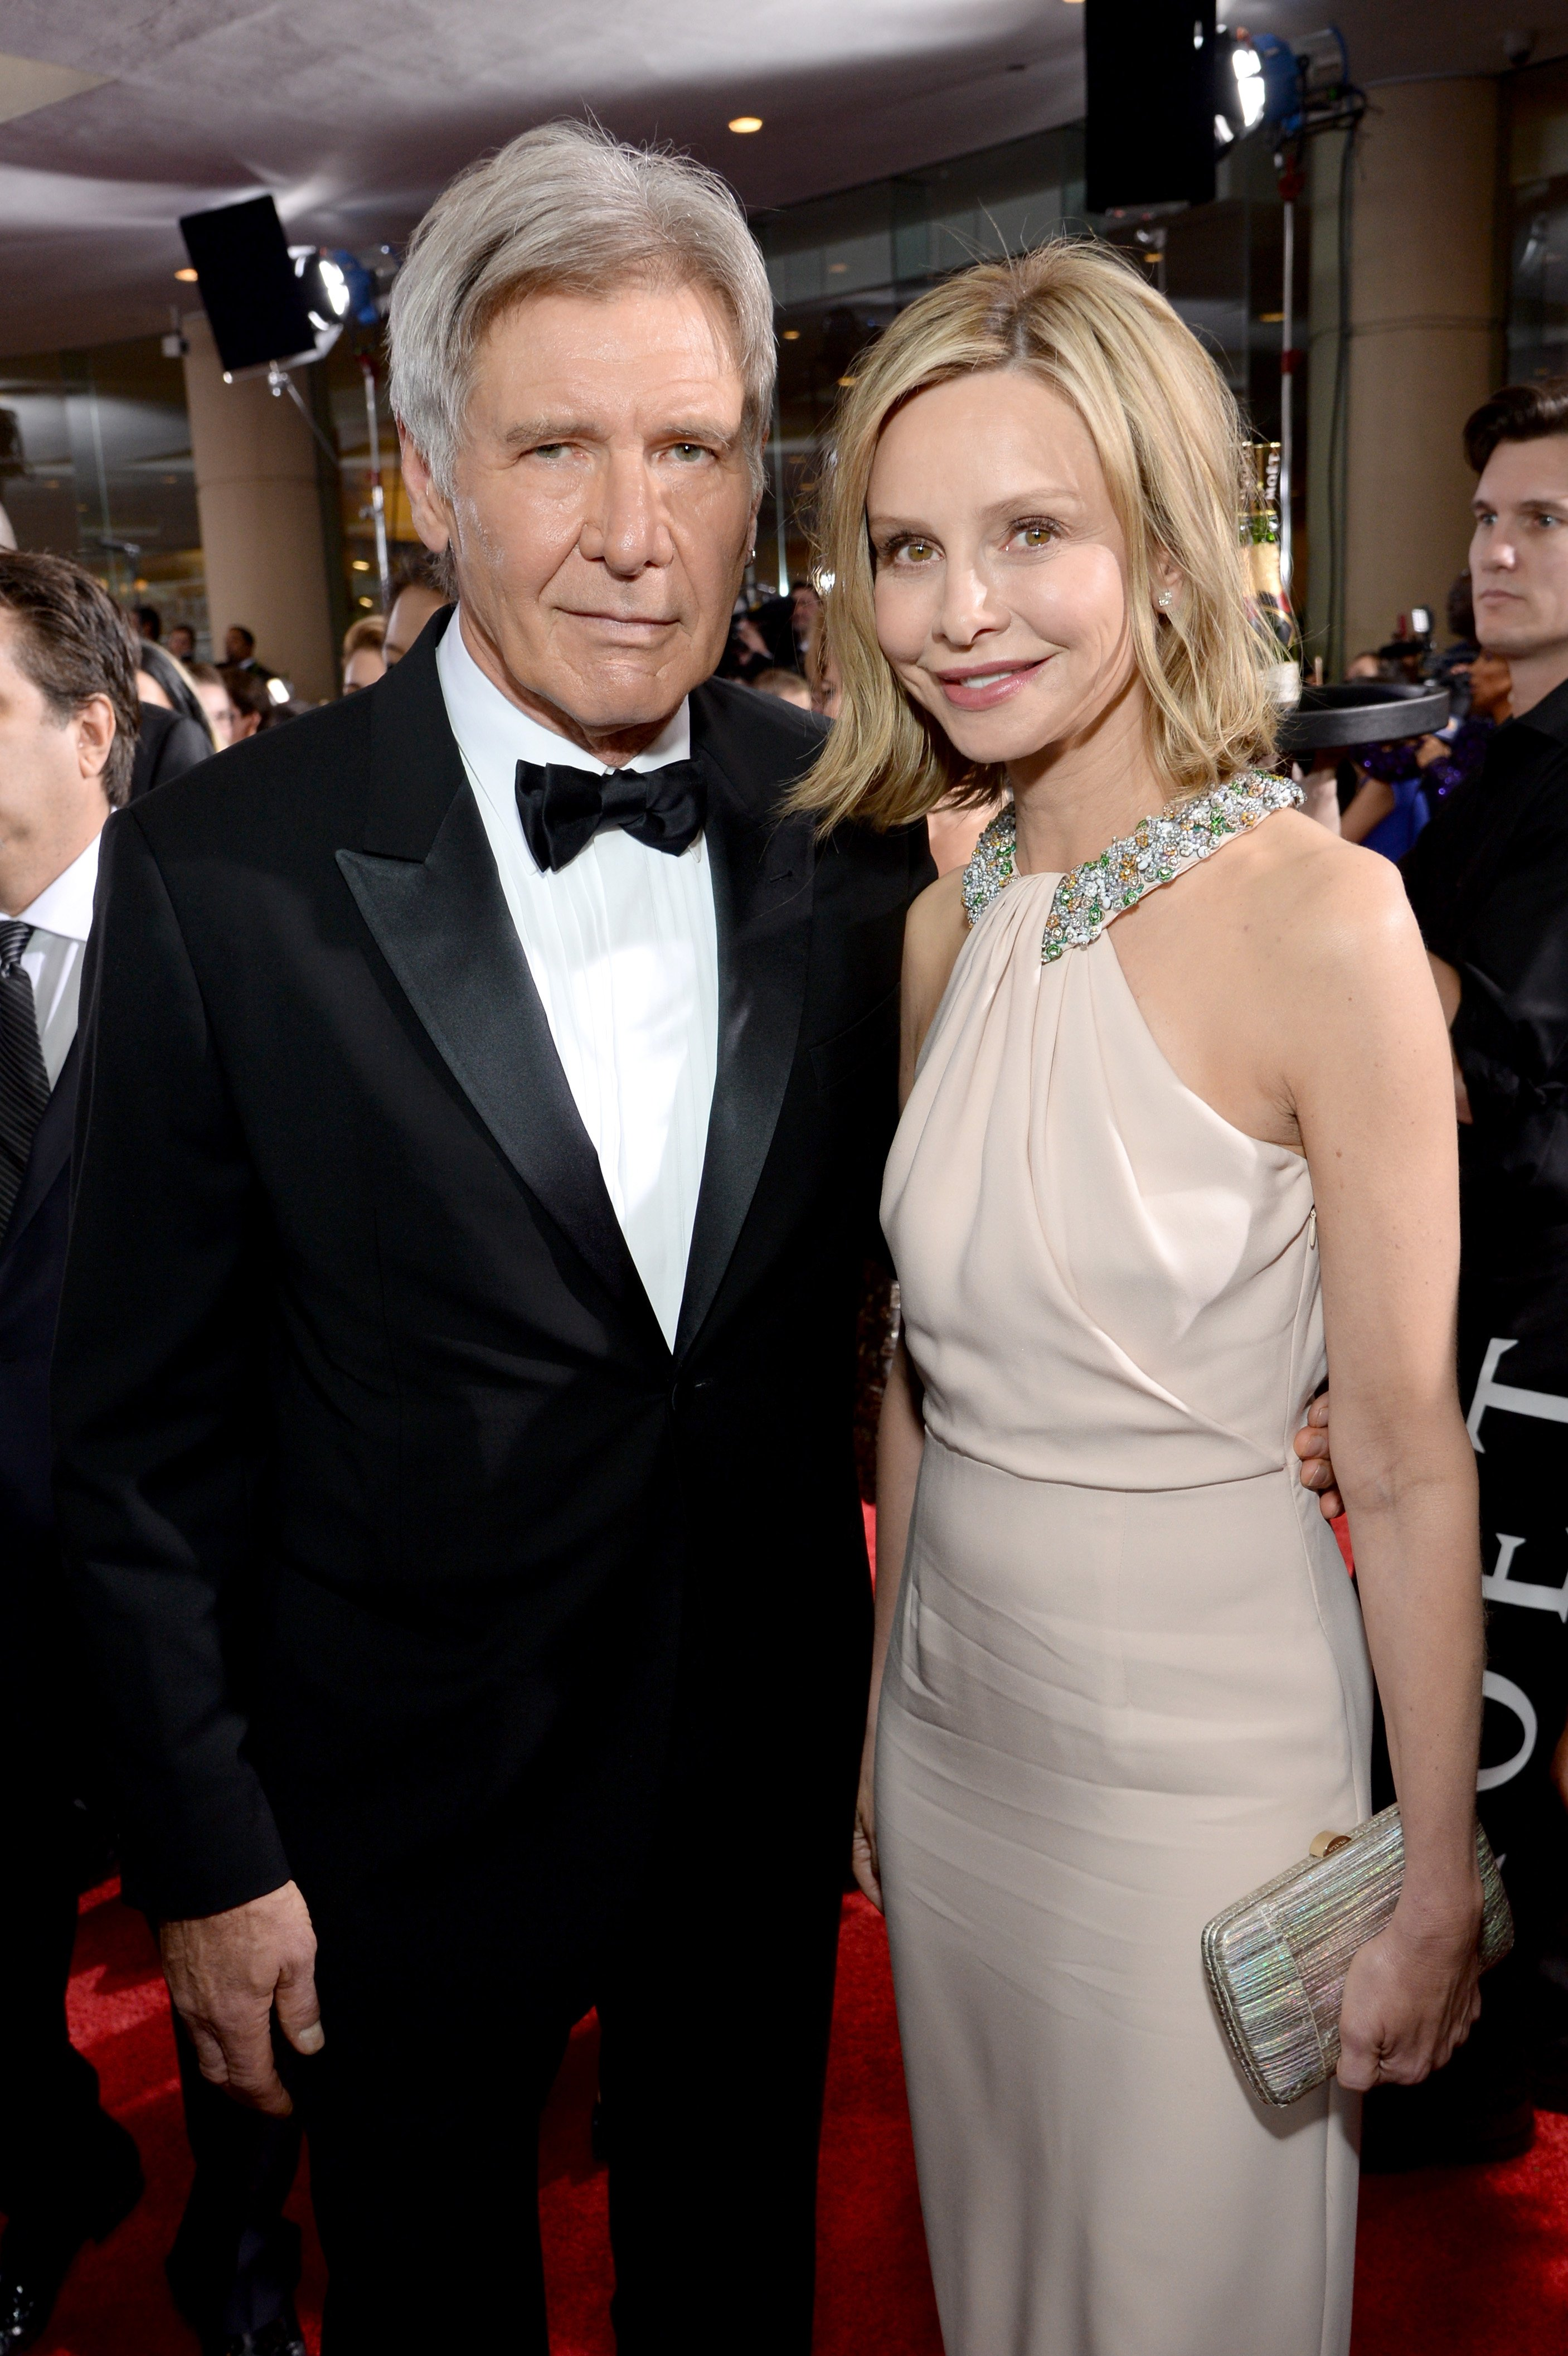 Harrison Ford (L) and Calista Flockhart attend the 72nd Annual Golden Globe Awards at The Beverly Hilton Hotel on January 11, 2015, in Beverly Hills, California. | Source: Getty Images.